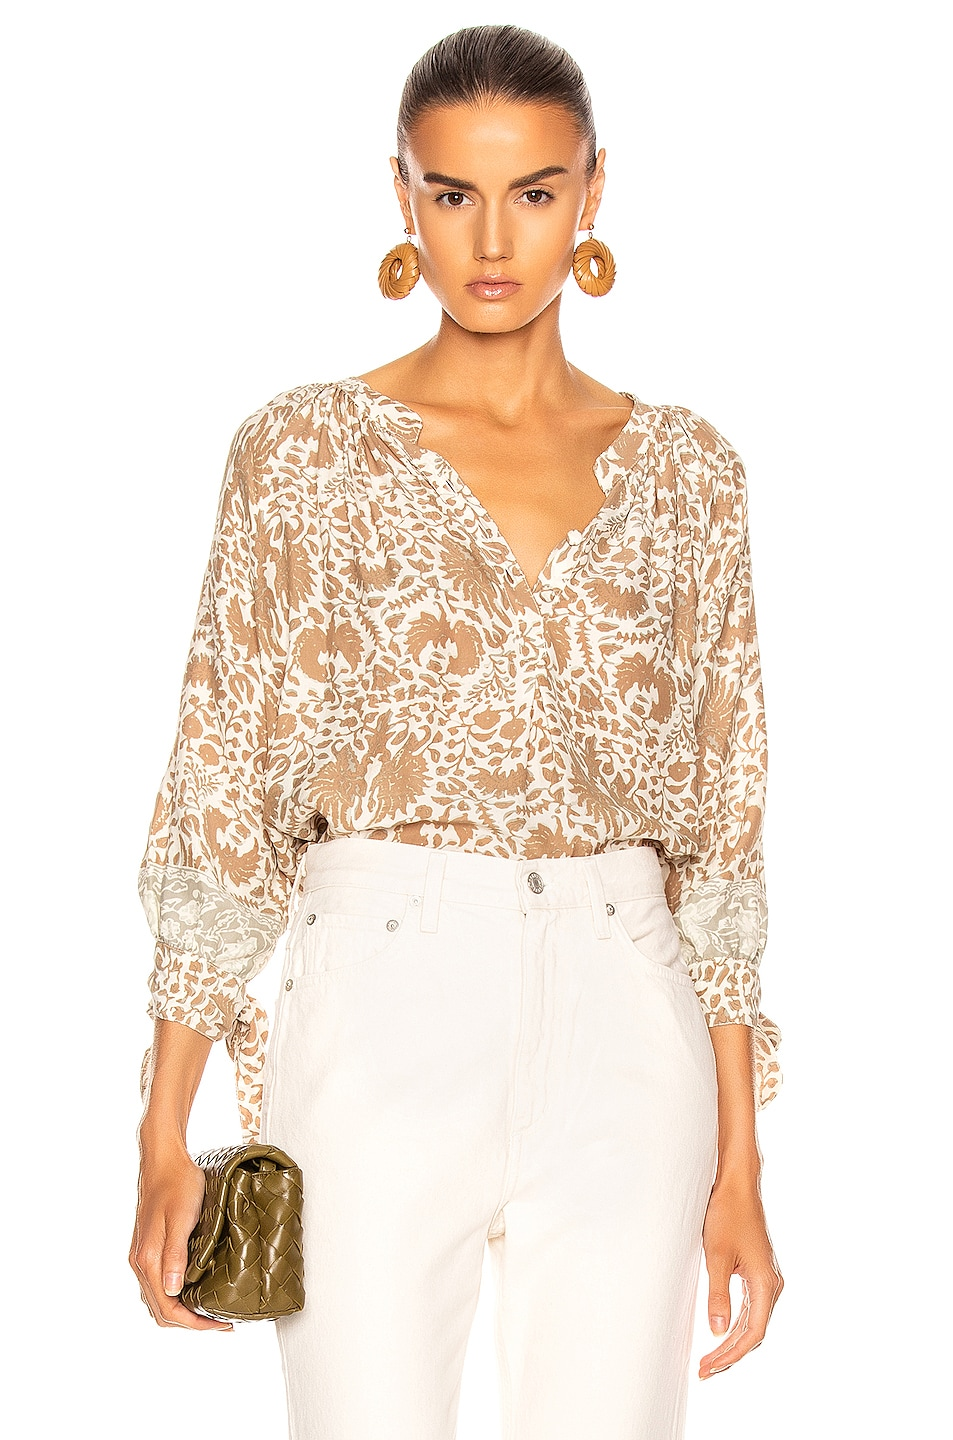 Image 1 of Natalie Martin Renata Shirt in Wing Print Paros Tan